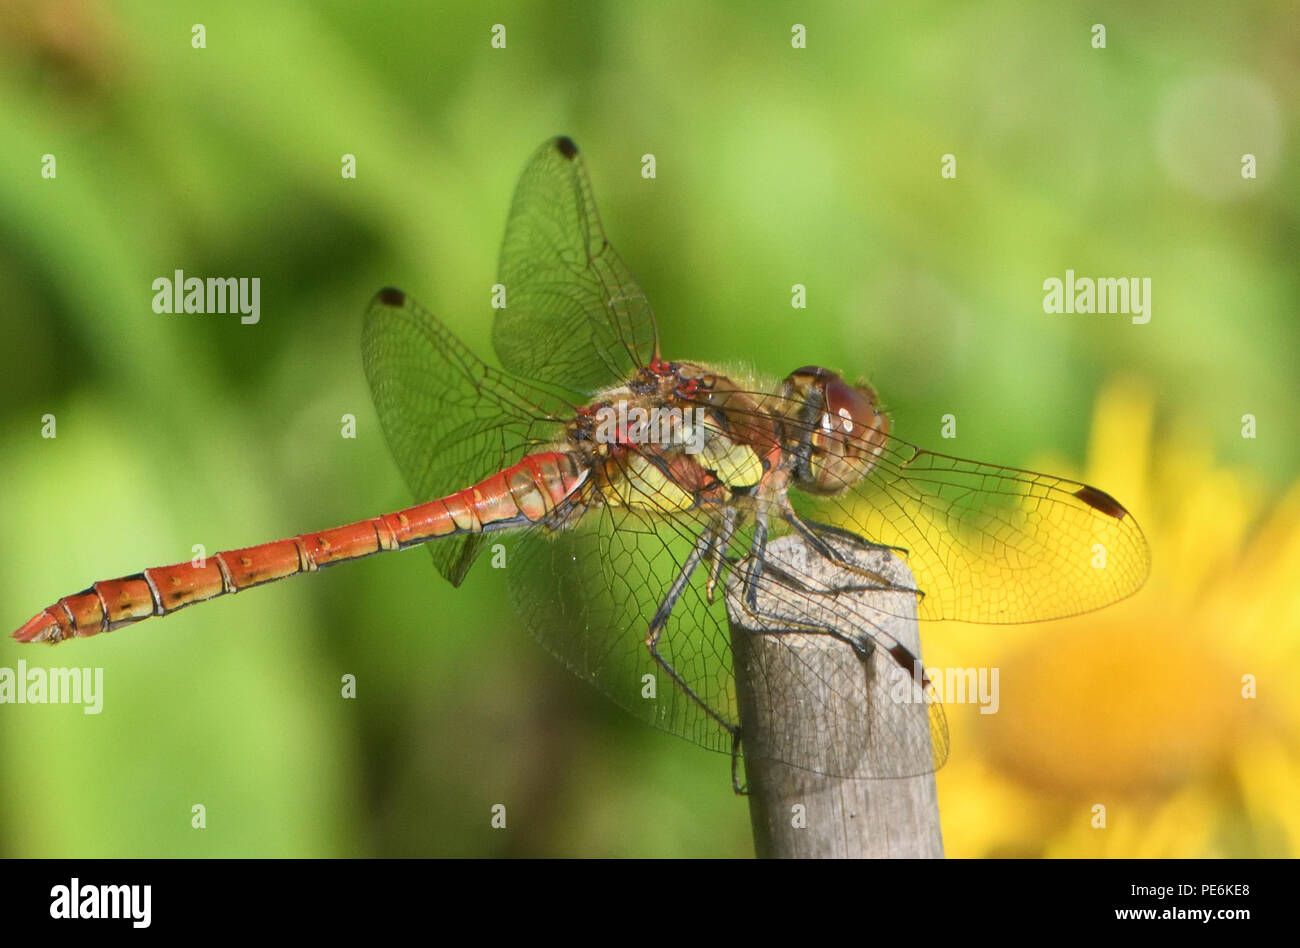 A male Common Darter dragonfly (Sympetrum striolatum) perches on a stick surveying its surroundings in a garden. Bedgebury Forest, Kent, UK Stock Photo